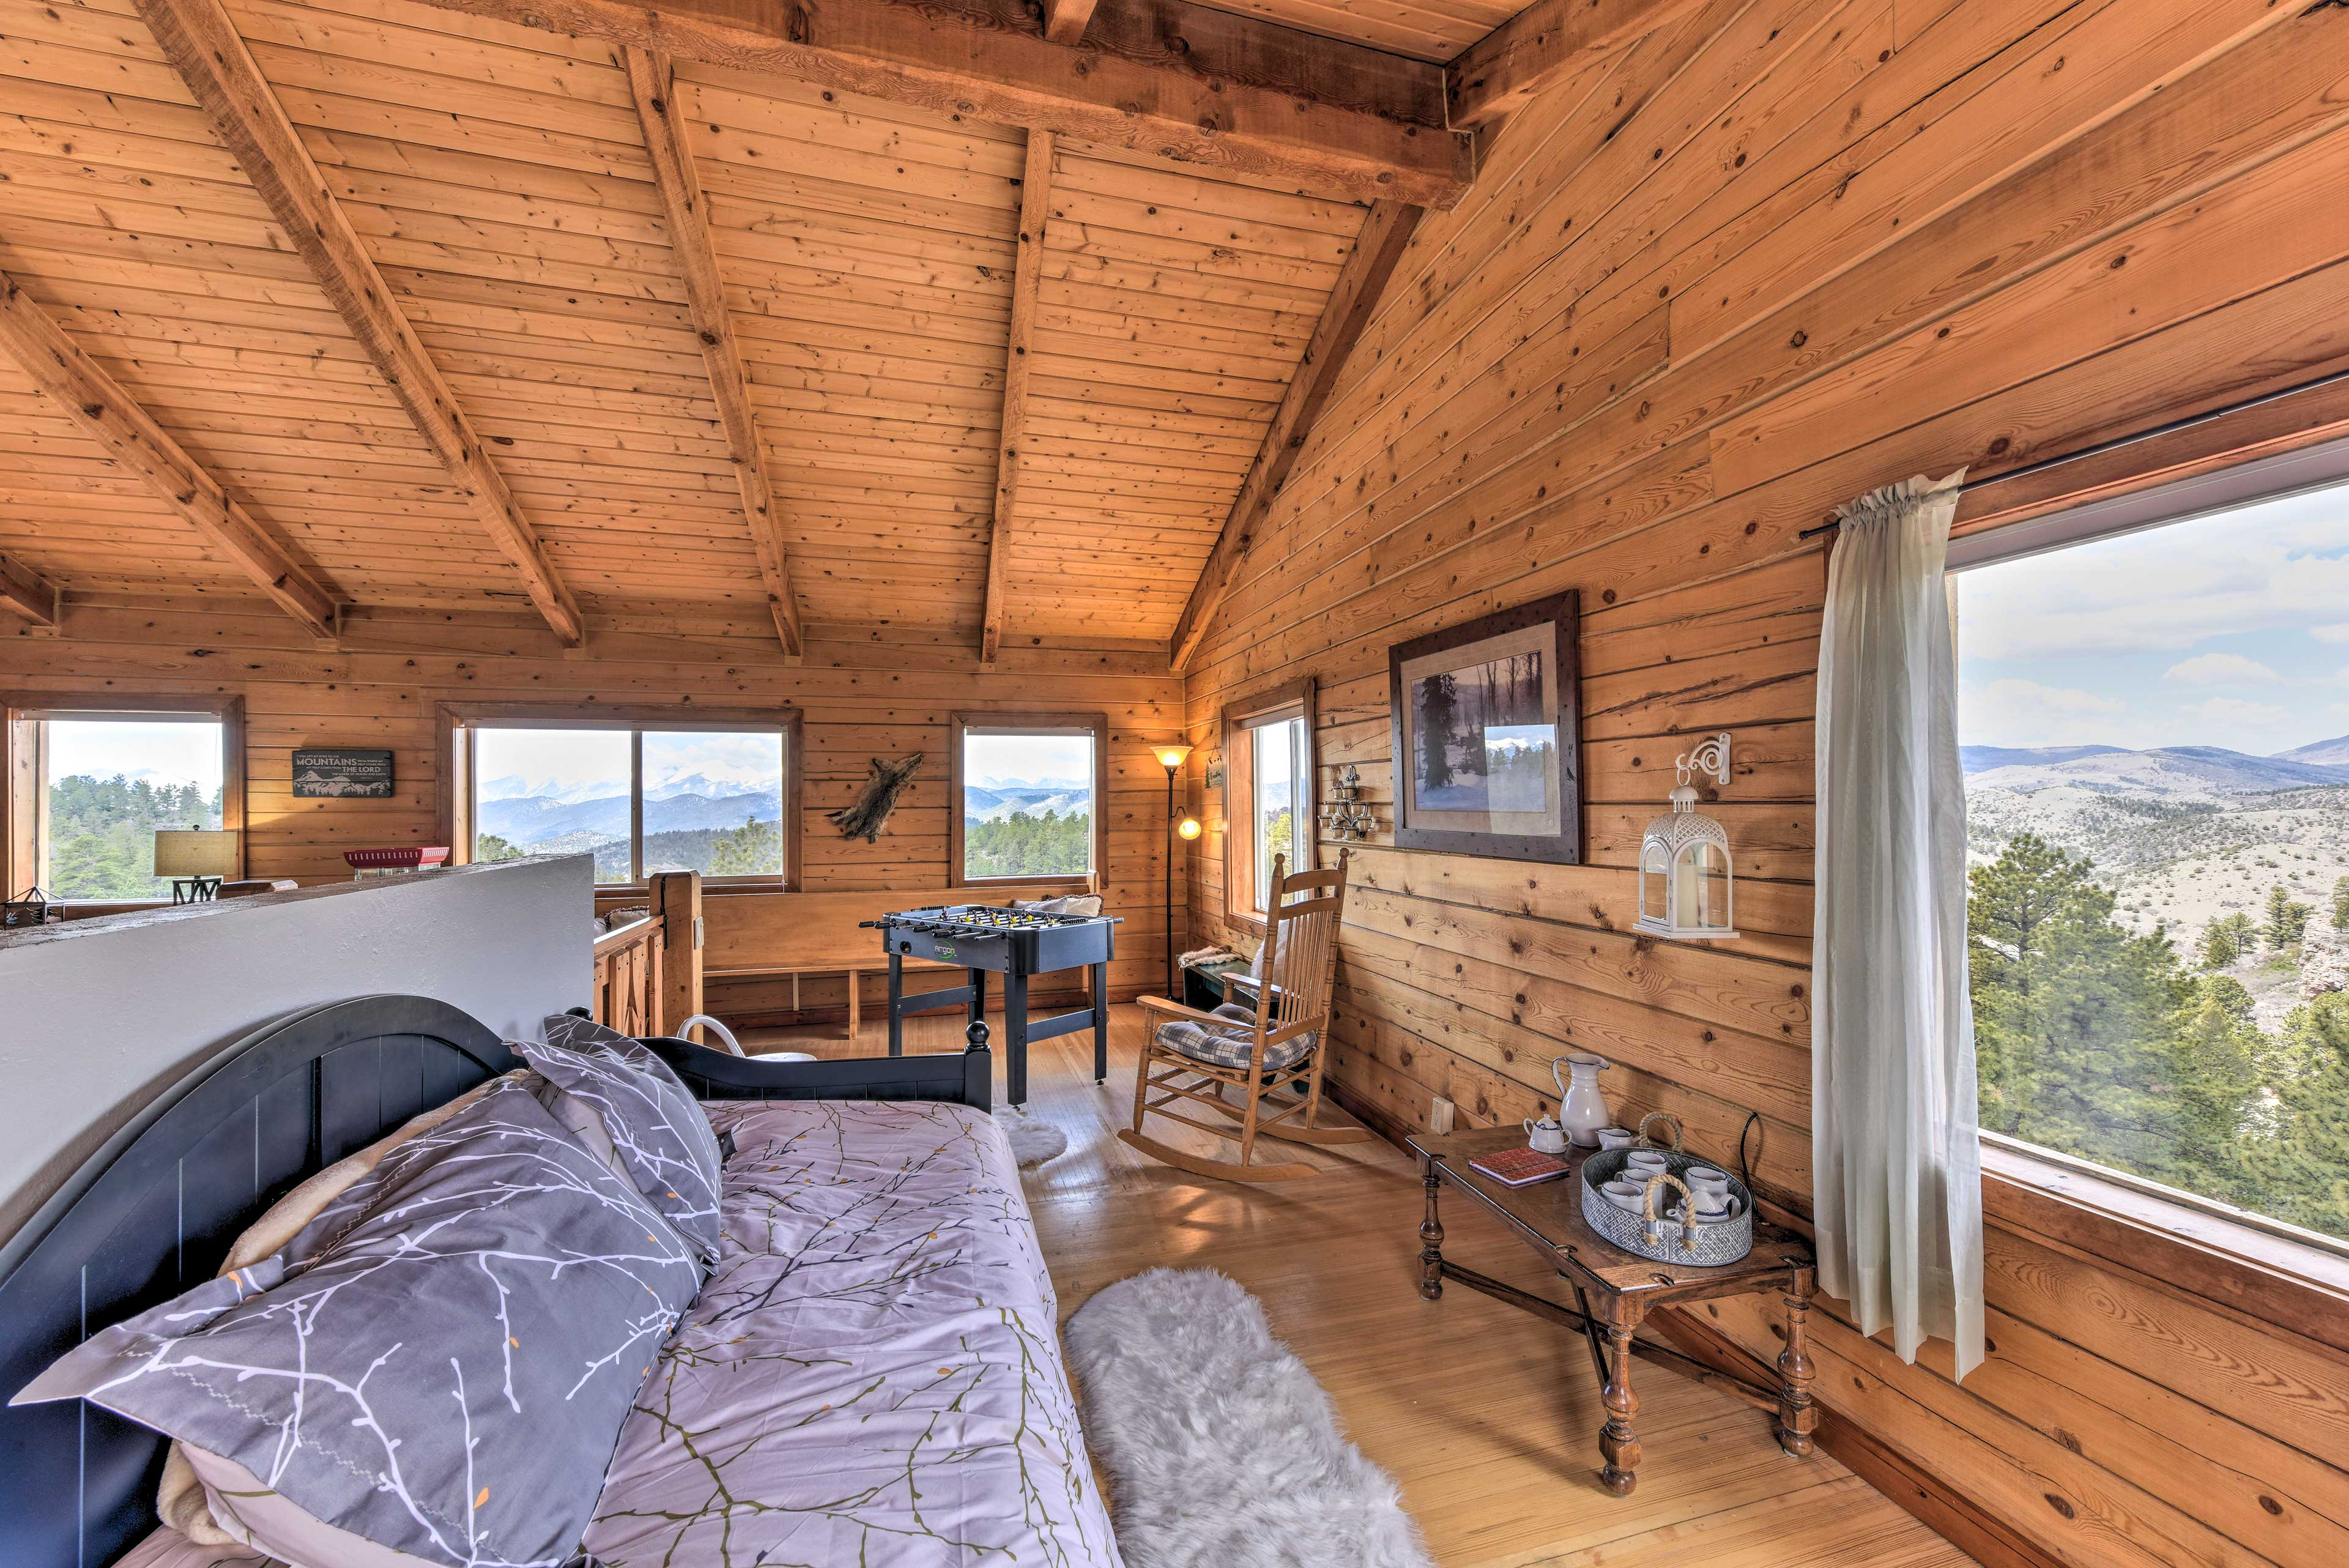 The kids will love sleeping on the twin beds in the great room upstairs.